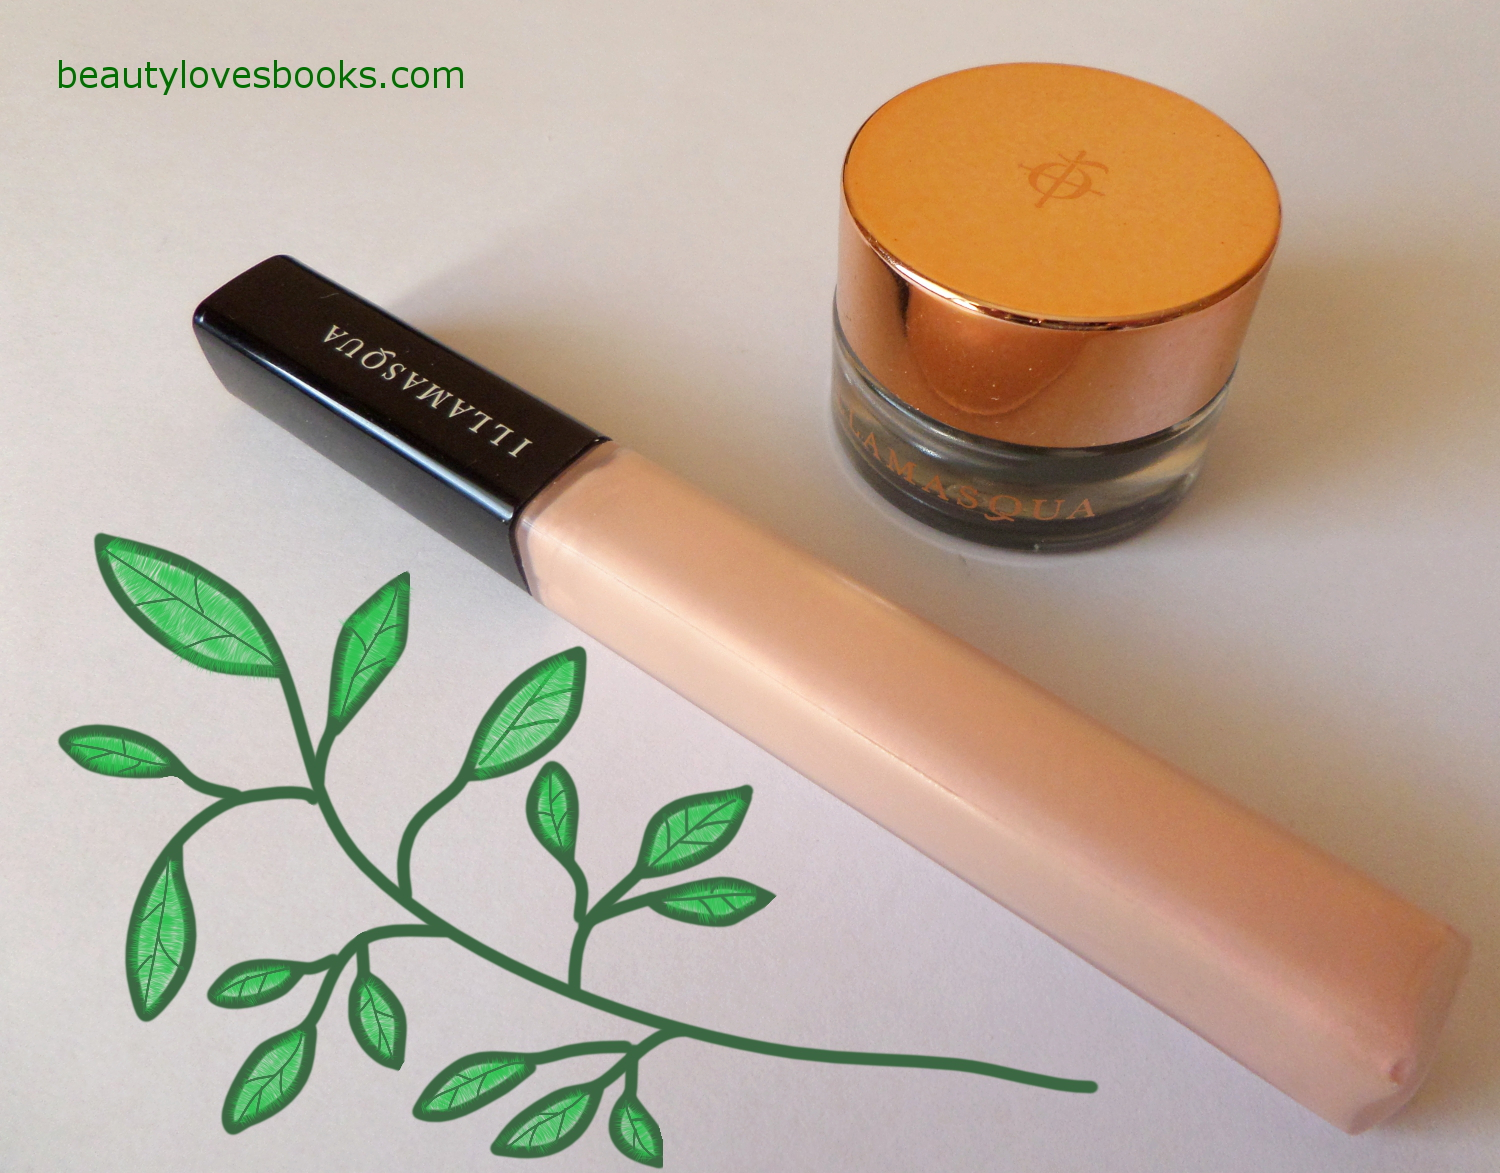 Illamasqua Vintage Metallix eyeshadow in Biblot and Illamasqua Sheer Lipgloss in Exquisite